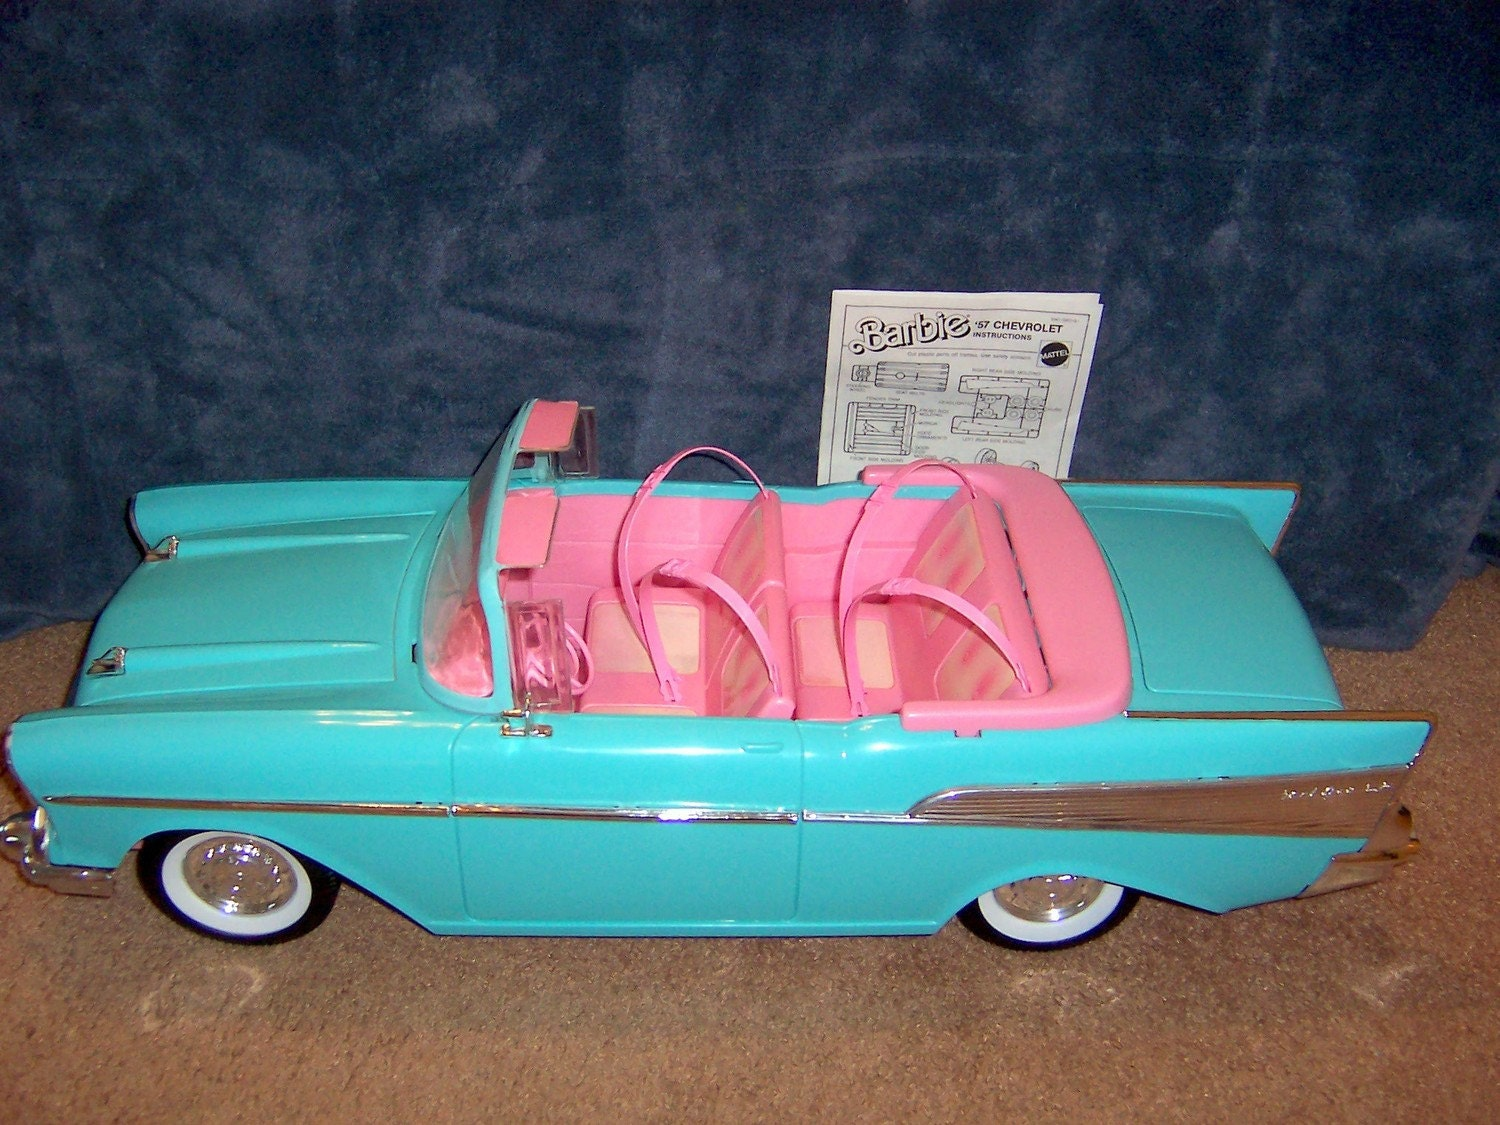 Perry Chevrolet Mattel 1988 Barbie '57 Chevy convertible car complete